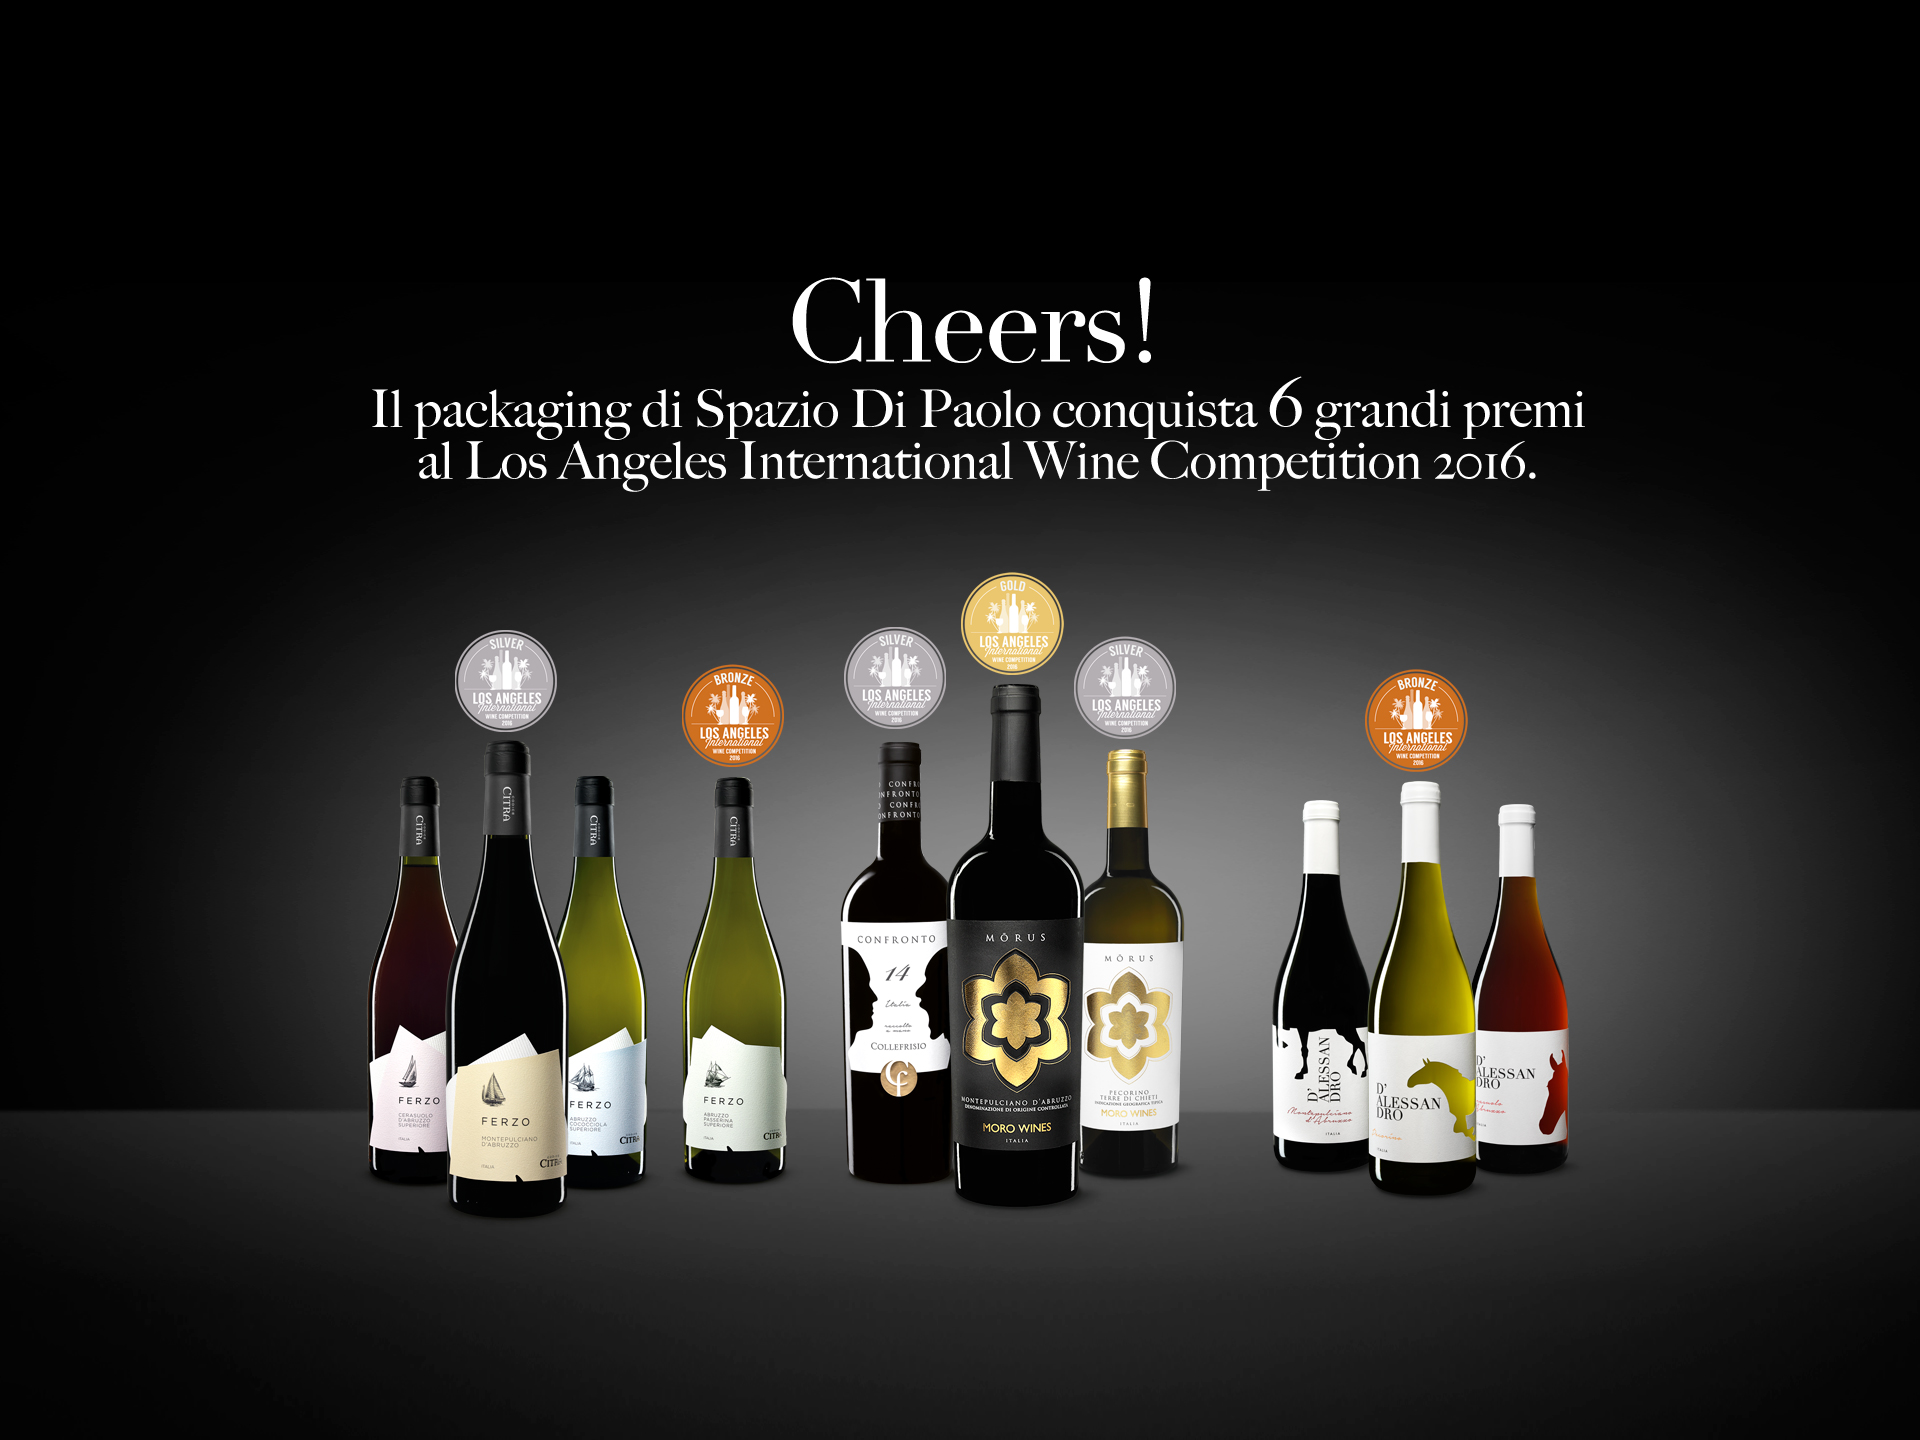 Spazio_di_paolo_packaging_wine_competition_los_angeles_ferzo_codice_citra_morus_moro_wines_confronto_collefrisio_vino_award